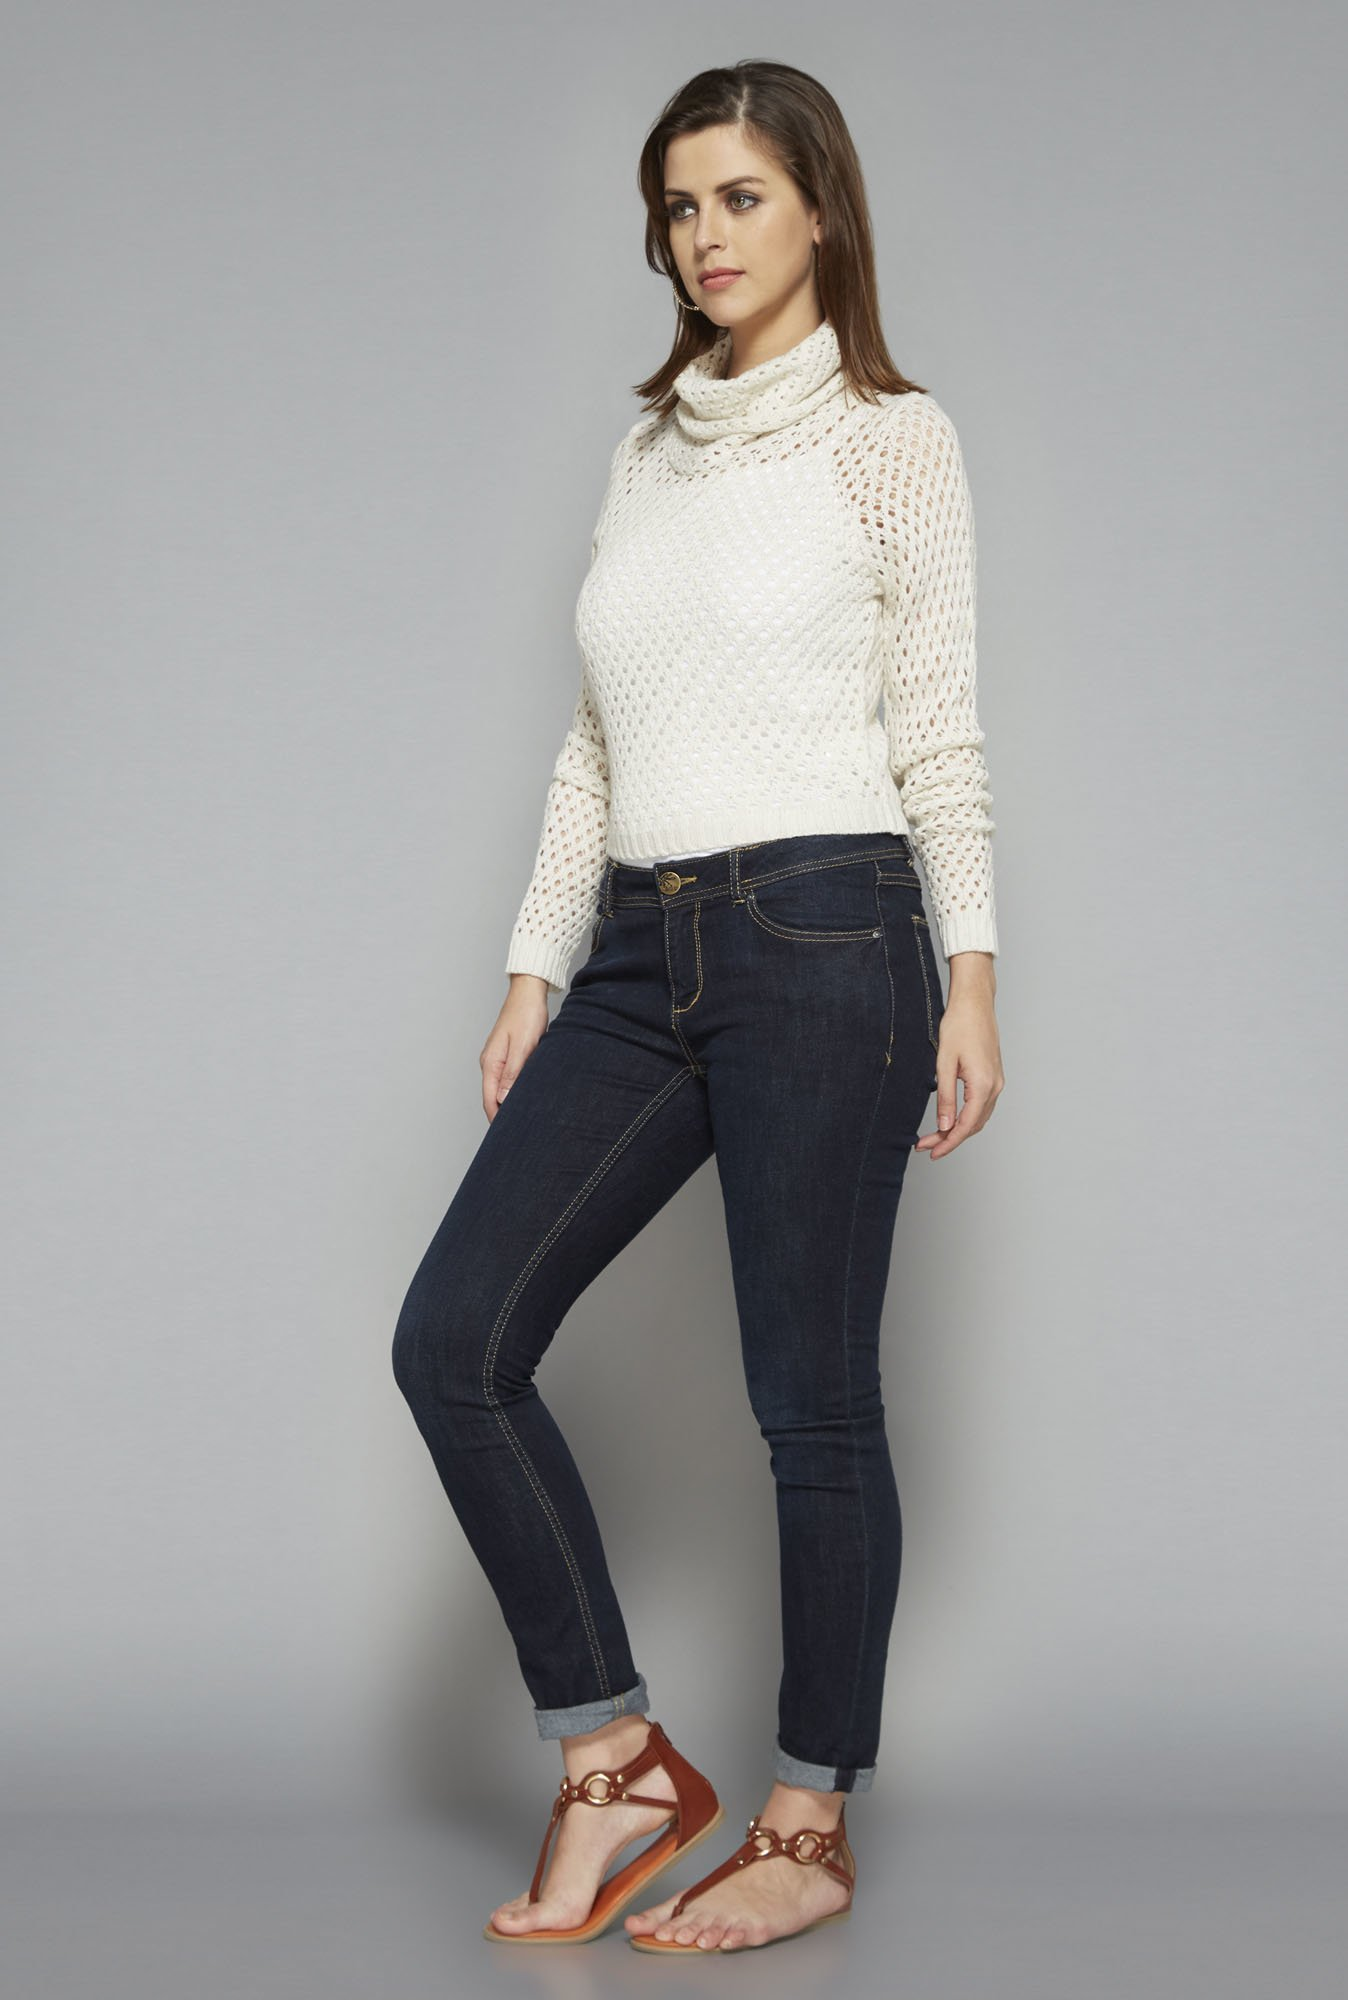 LOV by Westside White Alex Sweater